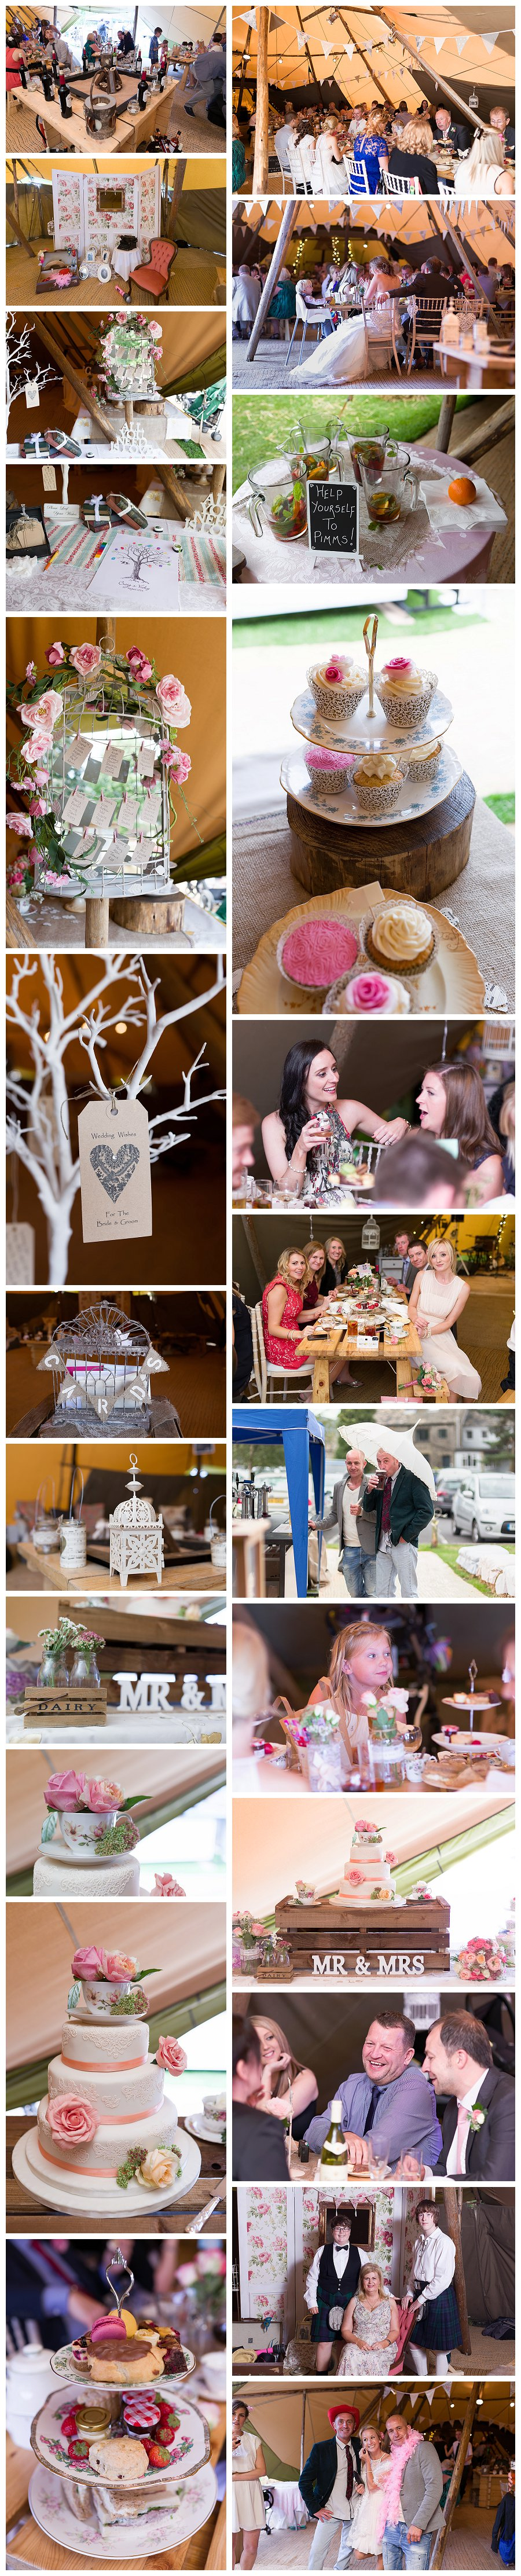 tipi wedding reception photography, wedding photographer tipi, best photographers tipi weddings